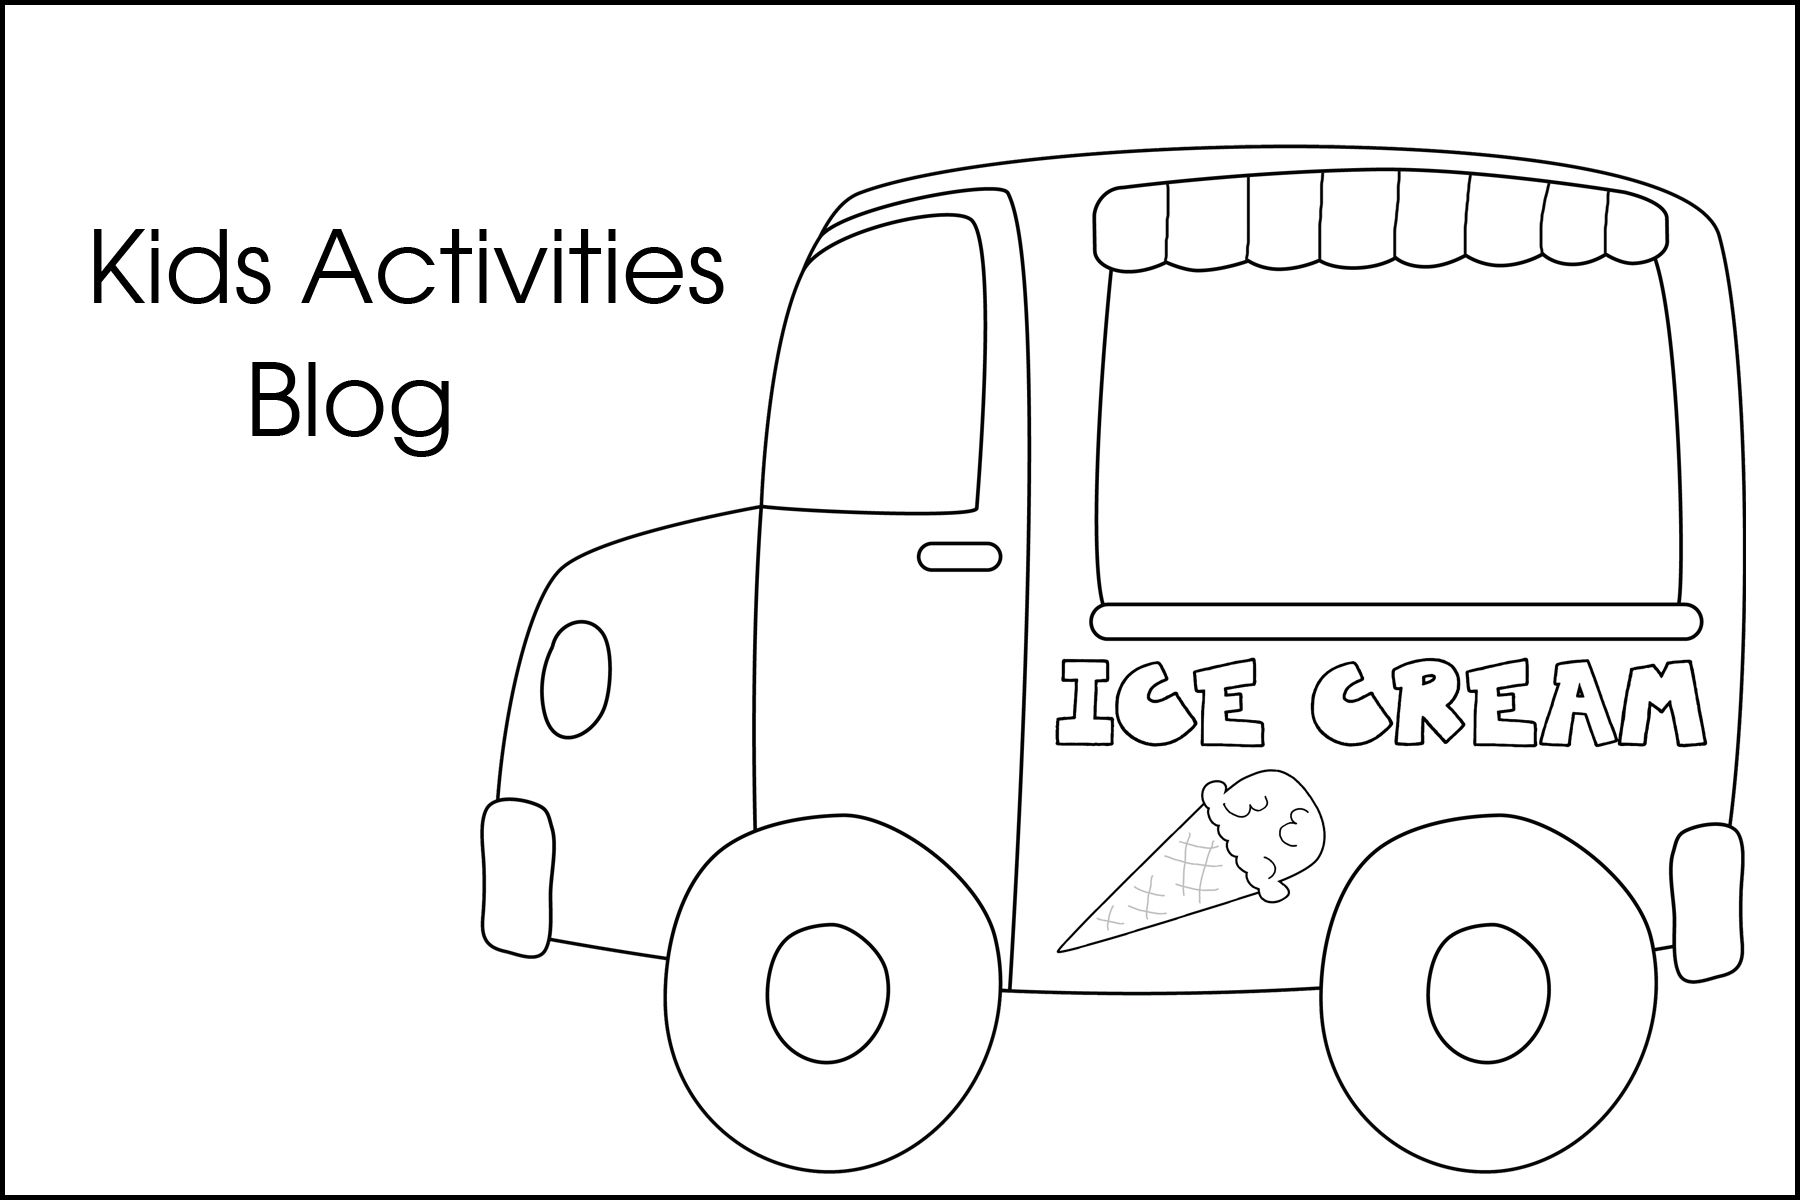 Ice Cream Coloring Pages Free Printable Ice Cream Coloring Pages Free Printable Coloring Pages Coloring Pages